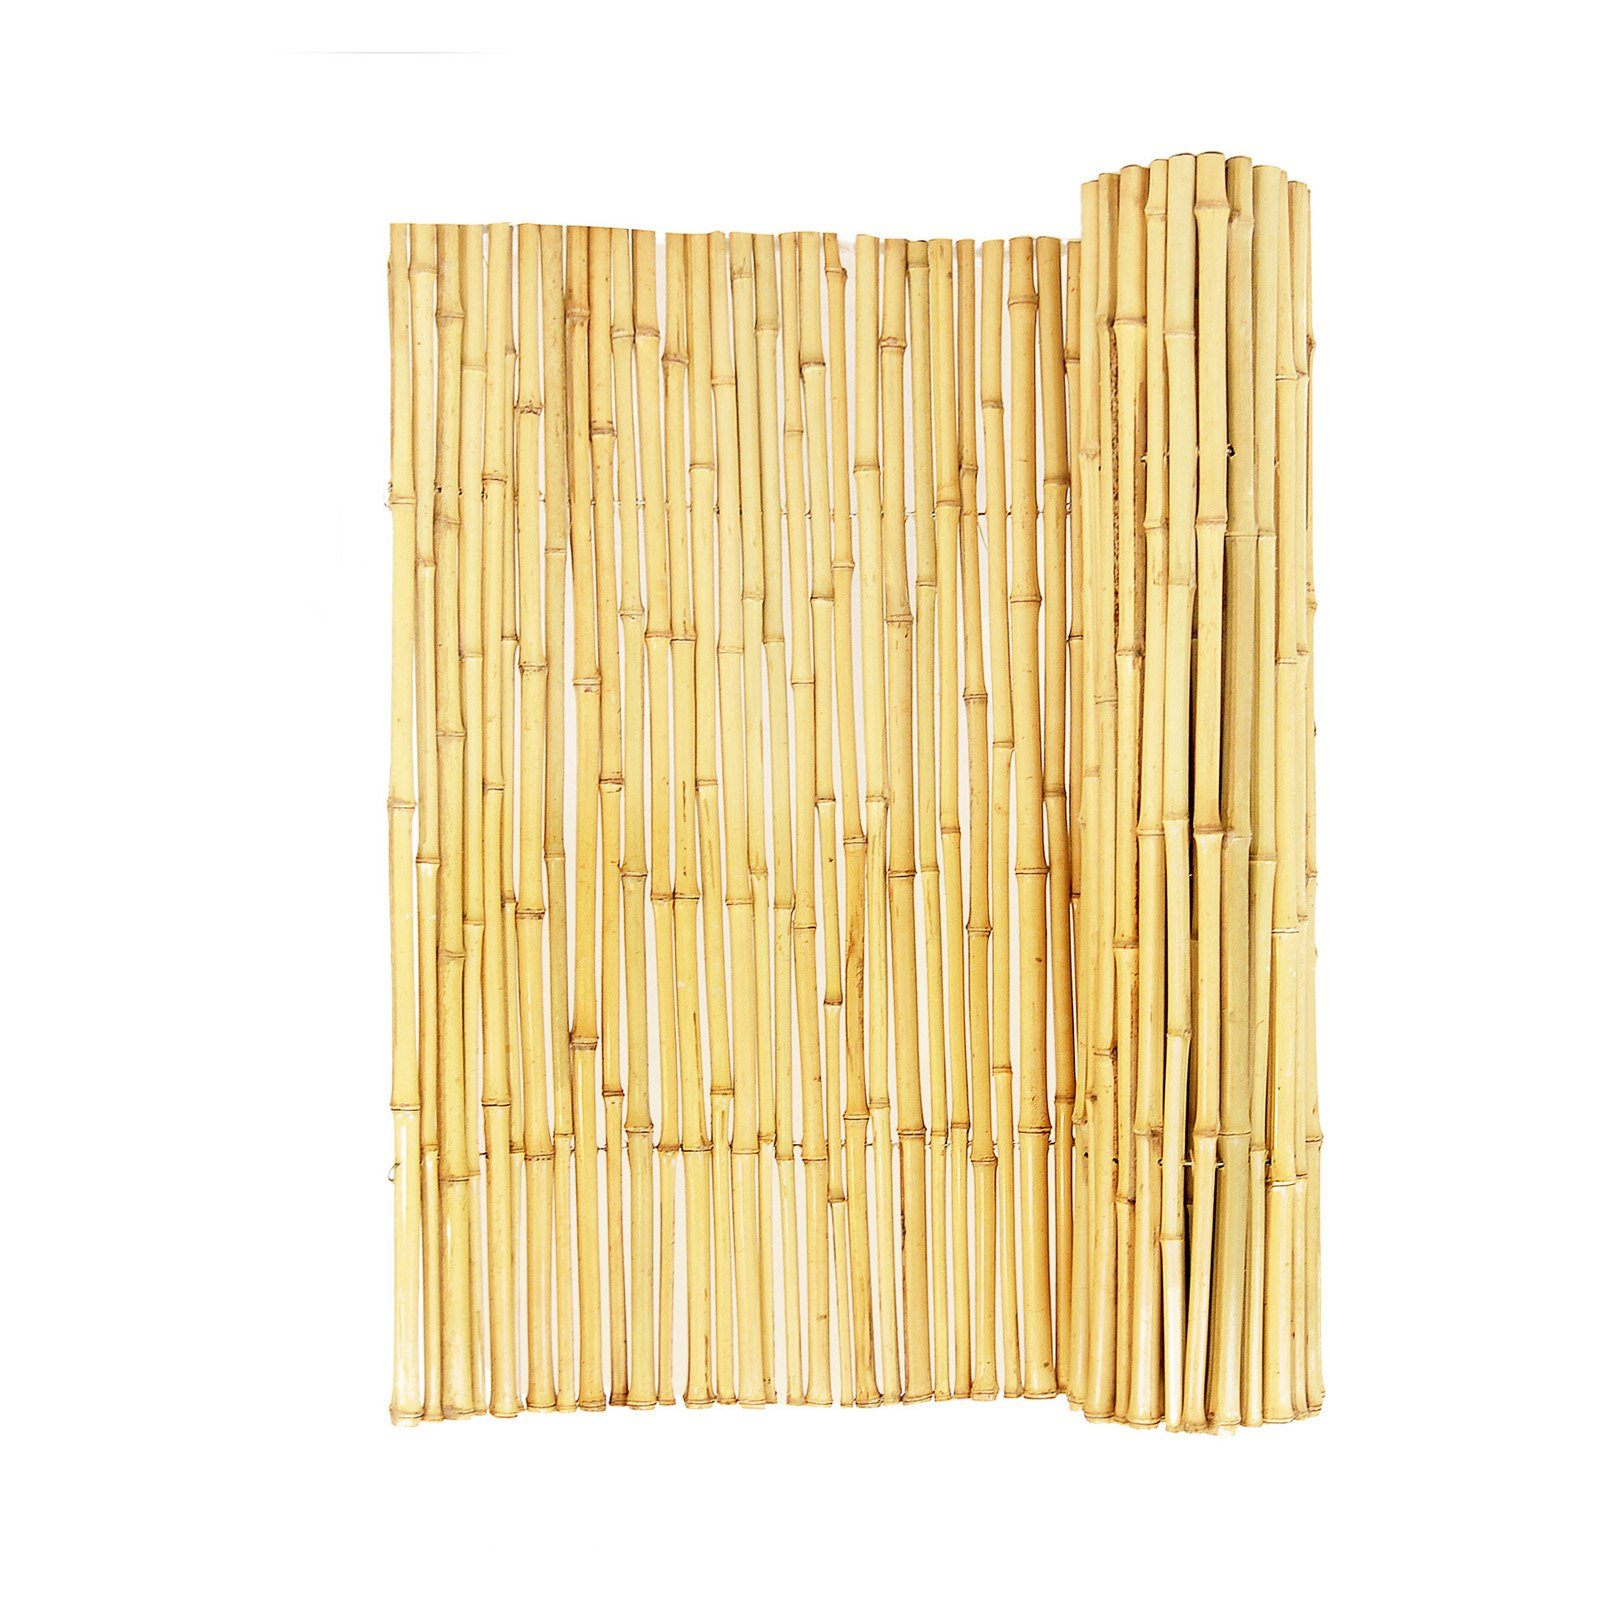 Forever Bamboo 3 4 in. Natural Rolled Bamboo Fence by